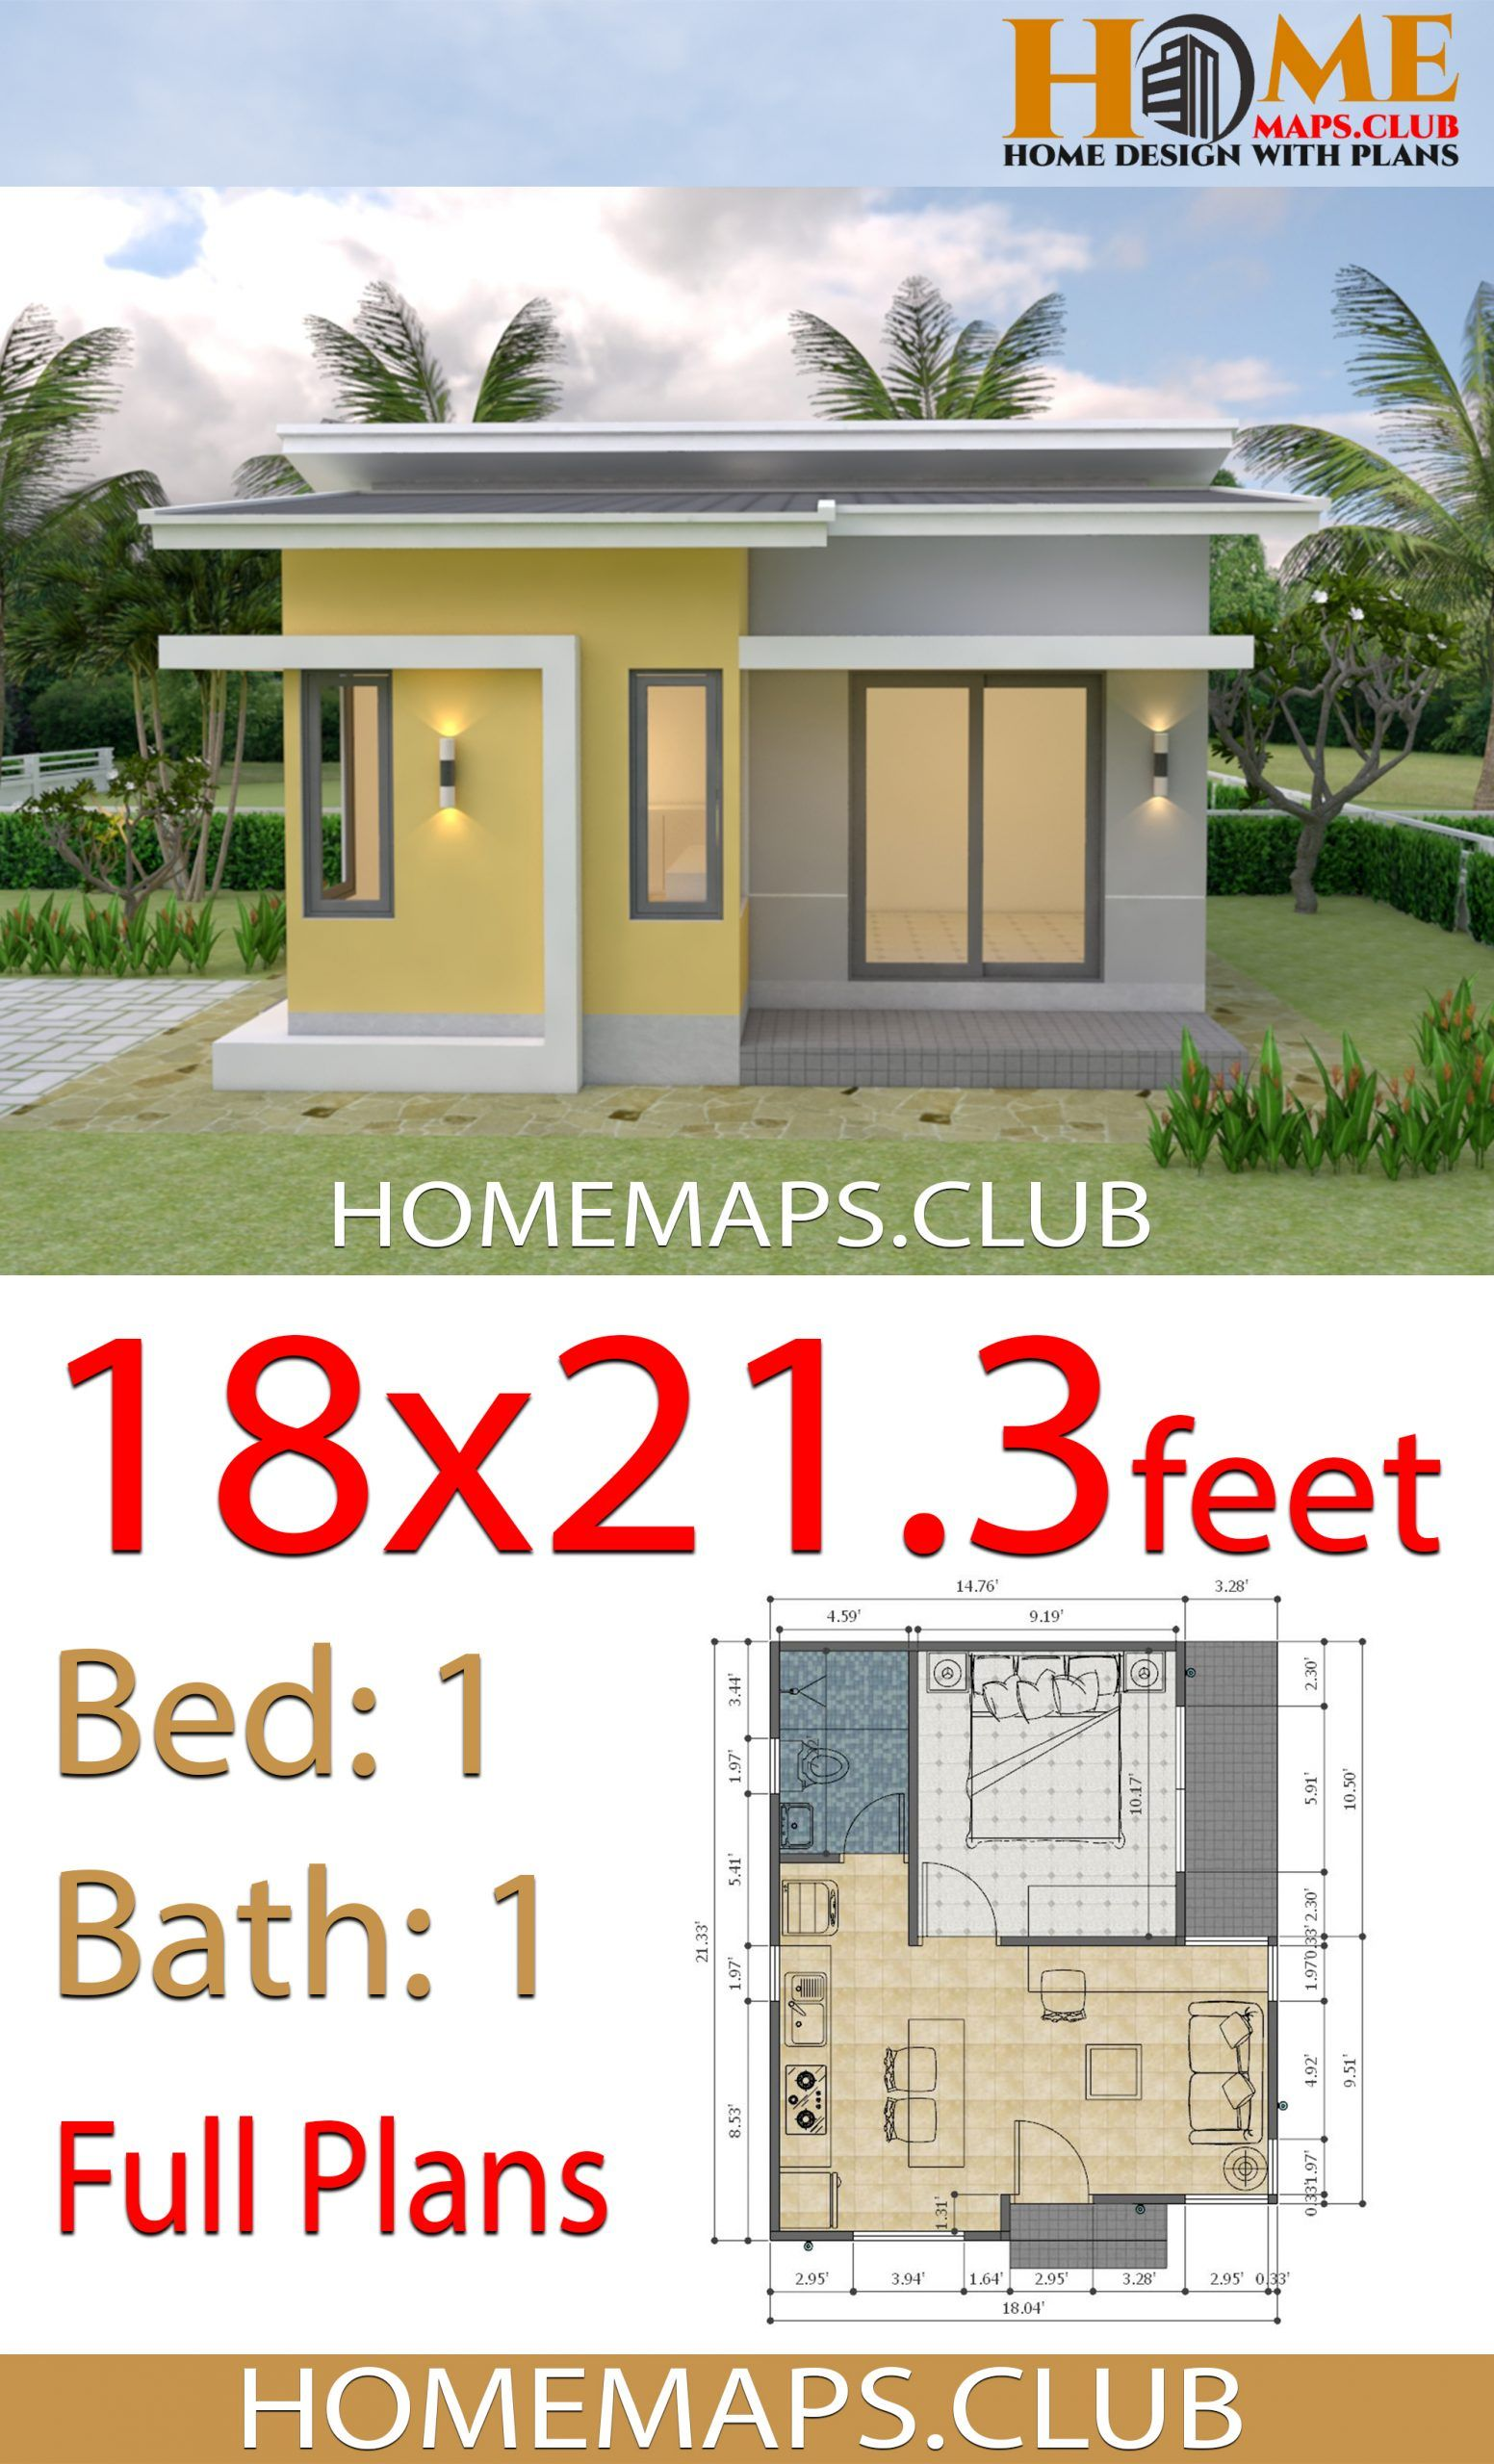 House Plans 18x21 3 Feet With One Bedroom Shed Roof Small House Plans One Bedroom House Plans Small House Design Plans